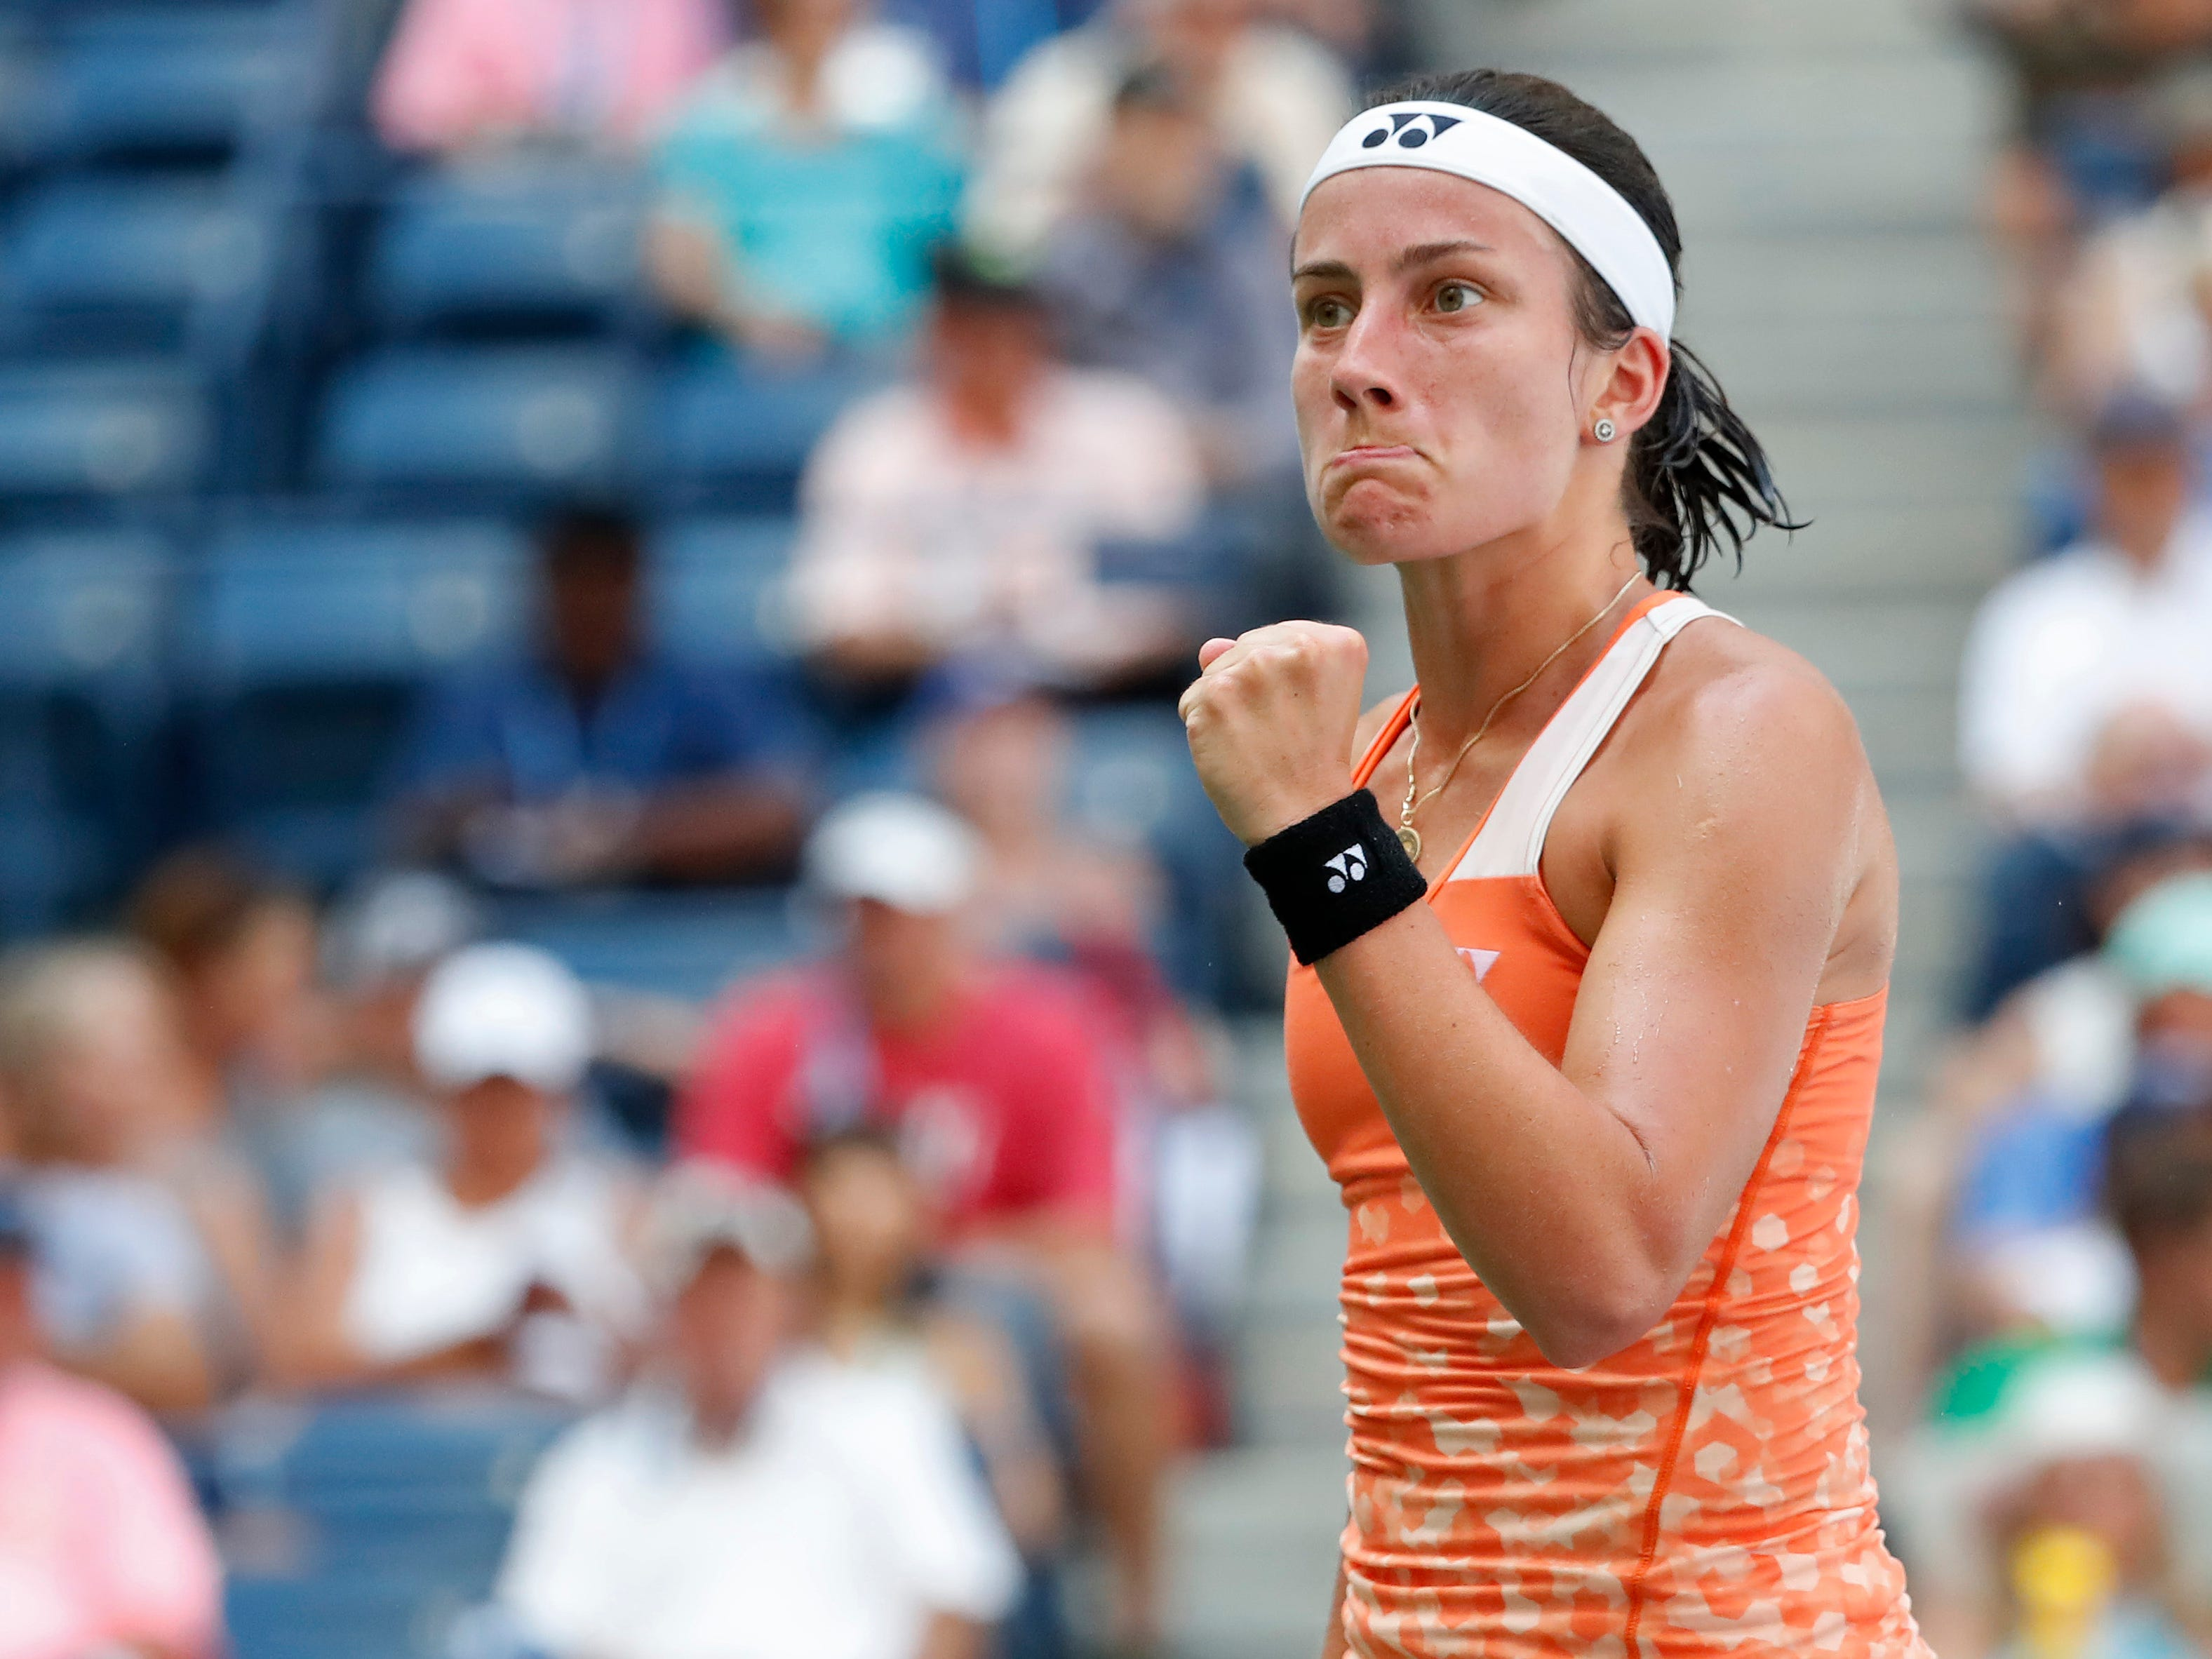 Anastasija Sevastova of Latvia celebrates after winning the first set against Sloane Stephens of the United States in a quarterfinal match at the U.S. Open.